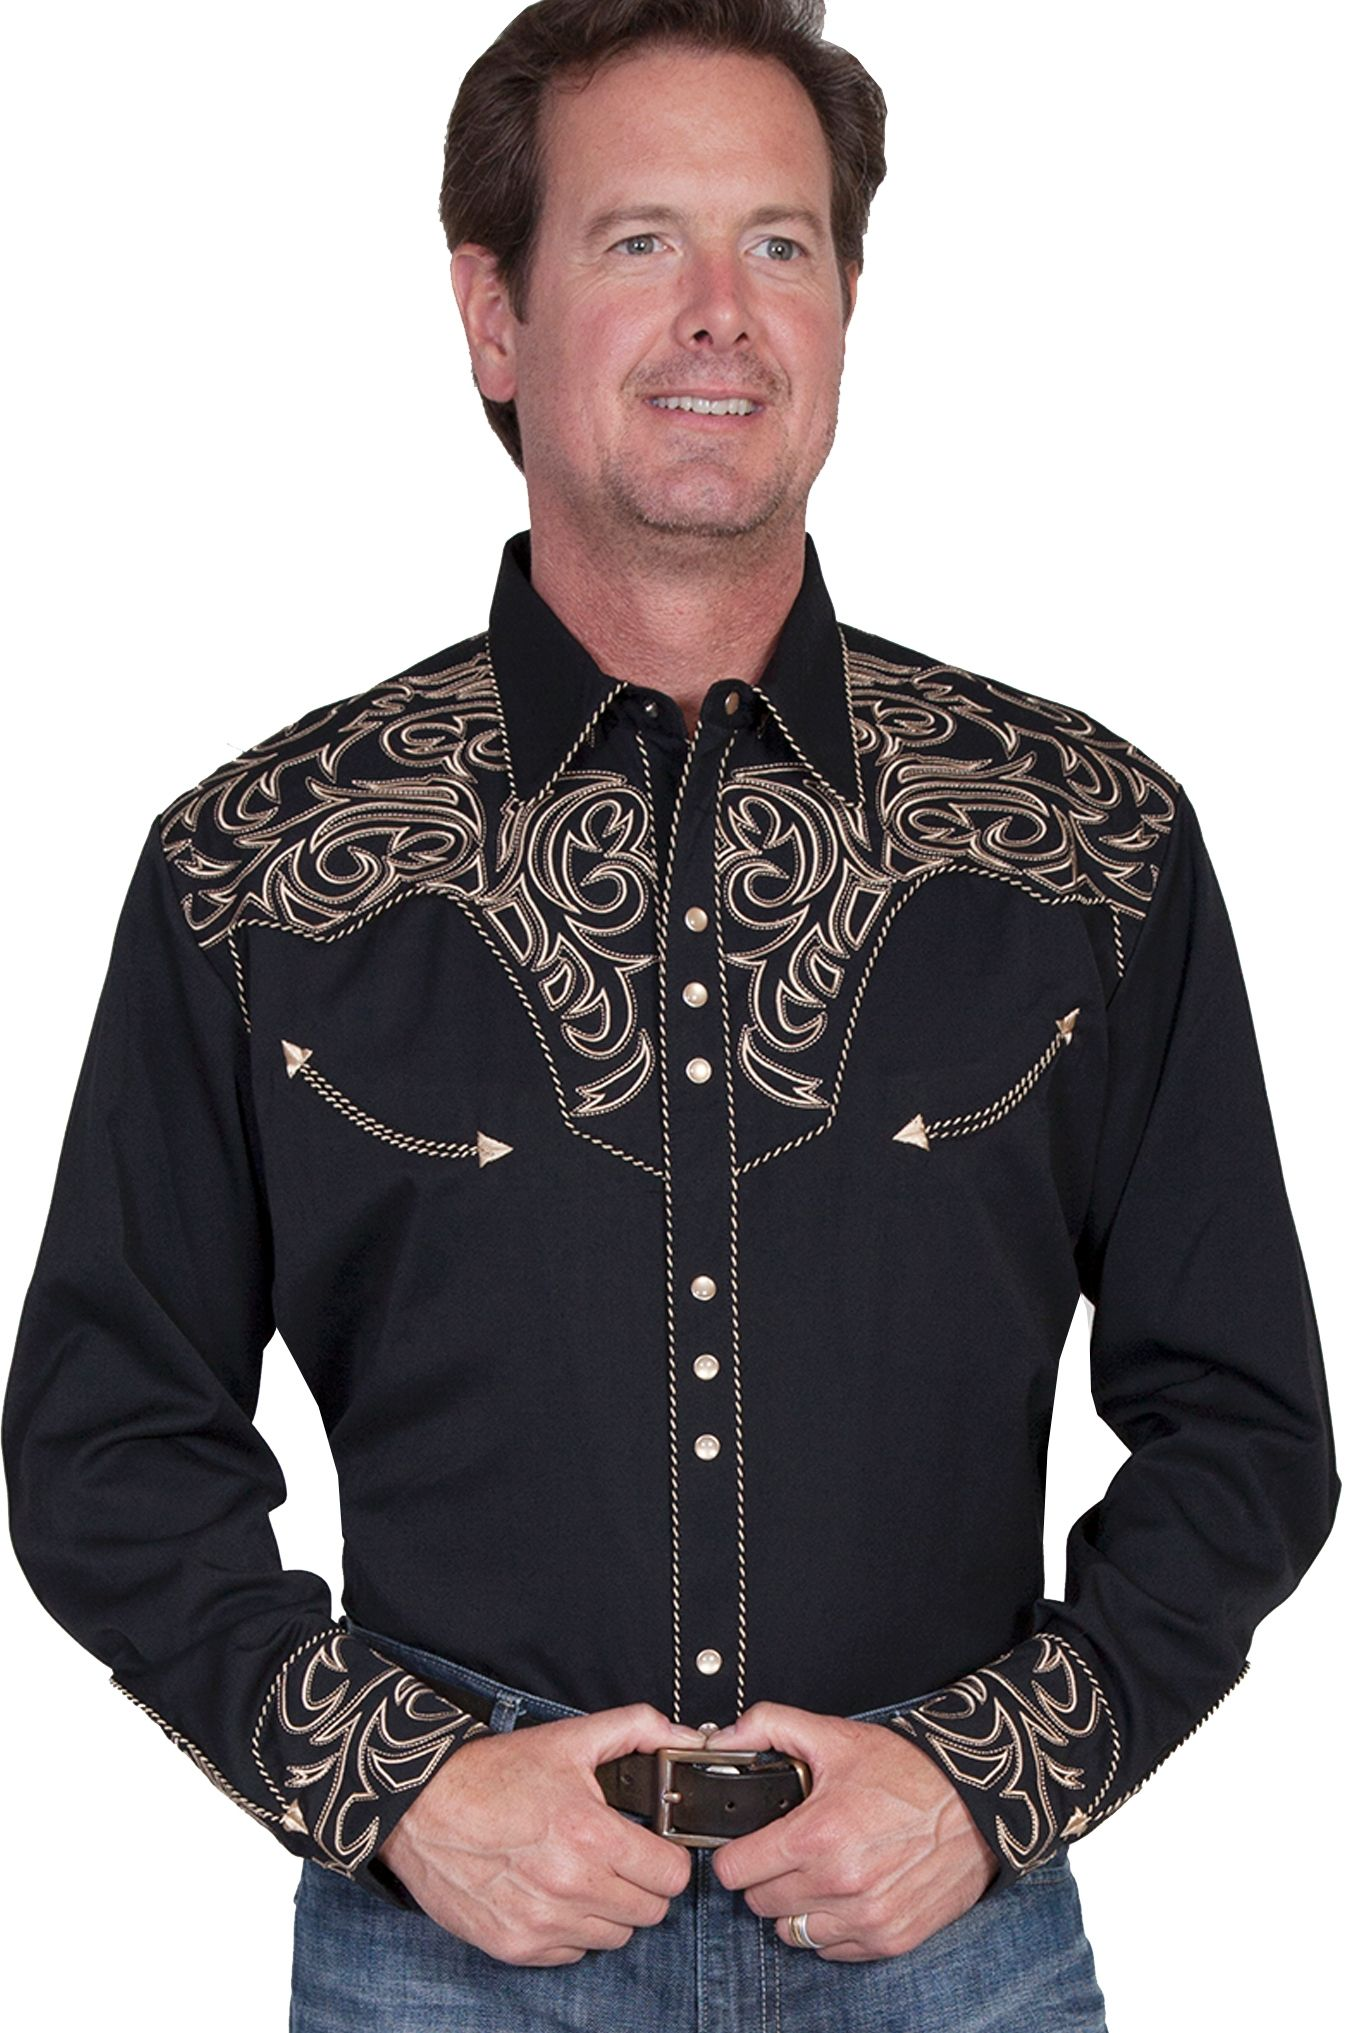 e3bcfecc93b5 This Mens Scully Tan Embroidered Black Western Shirt is a great cowboy shirt  for a rodeo or horse show with sizes up to 4XL